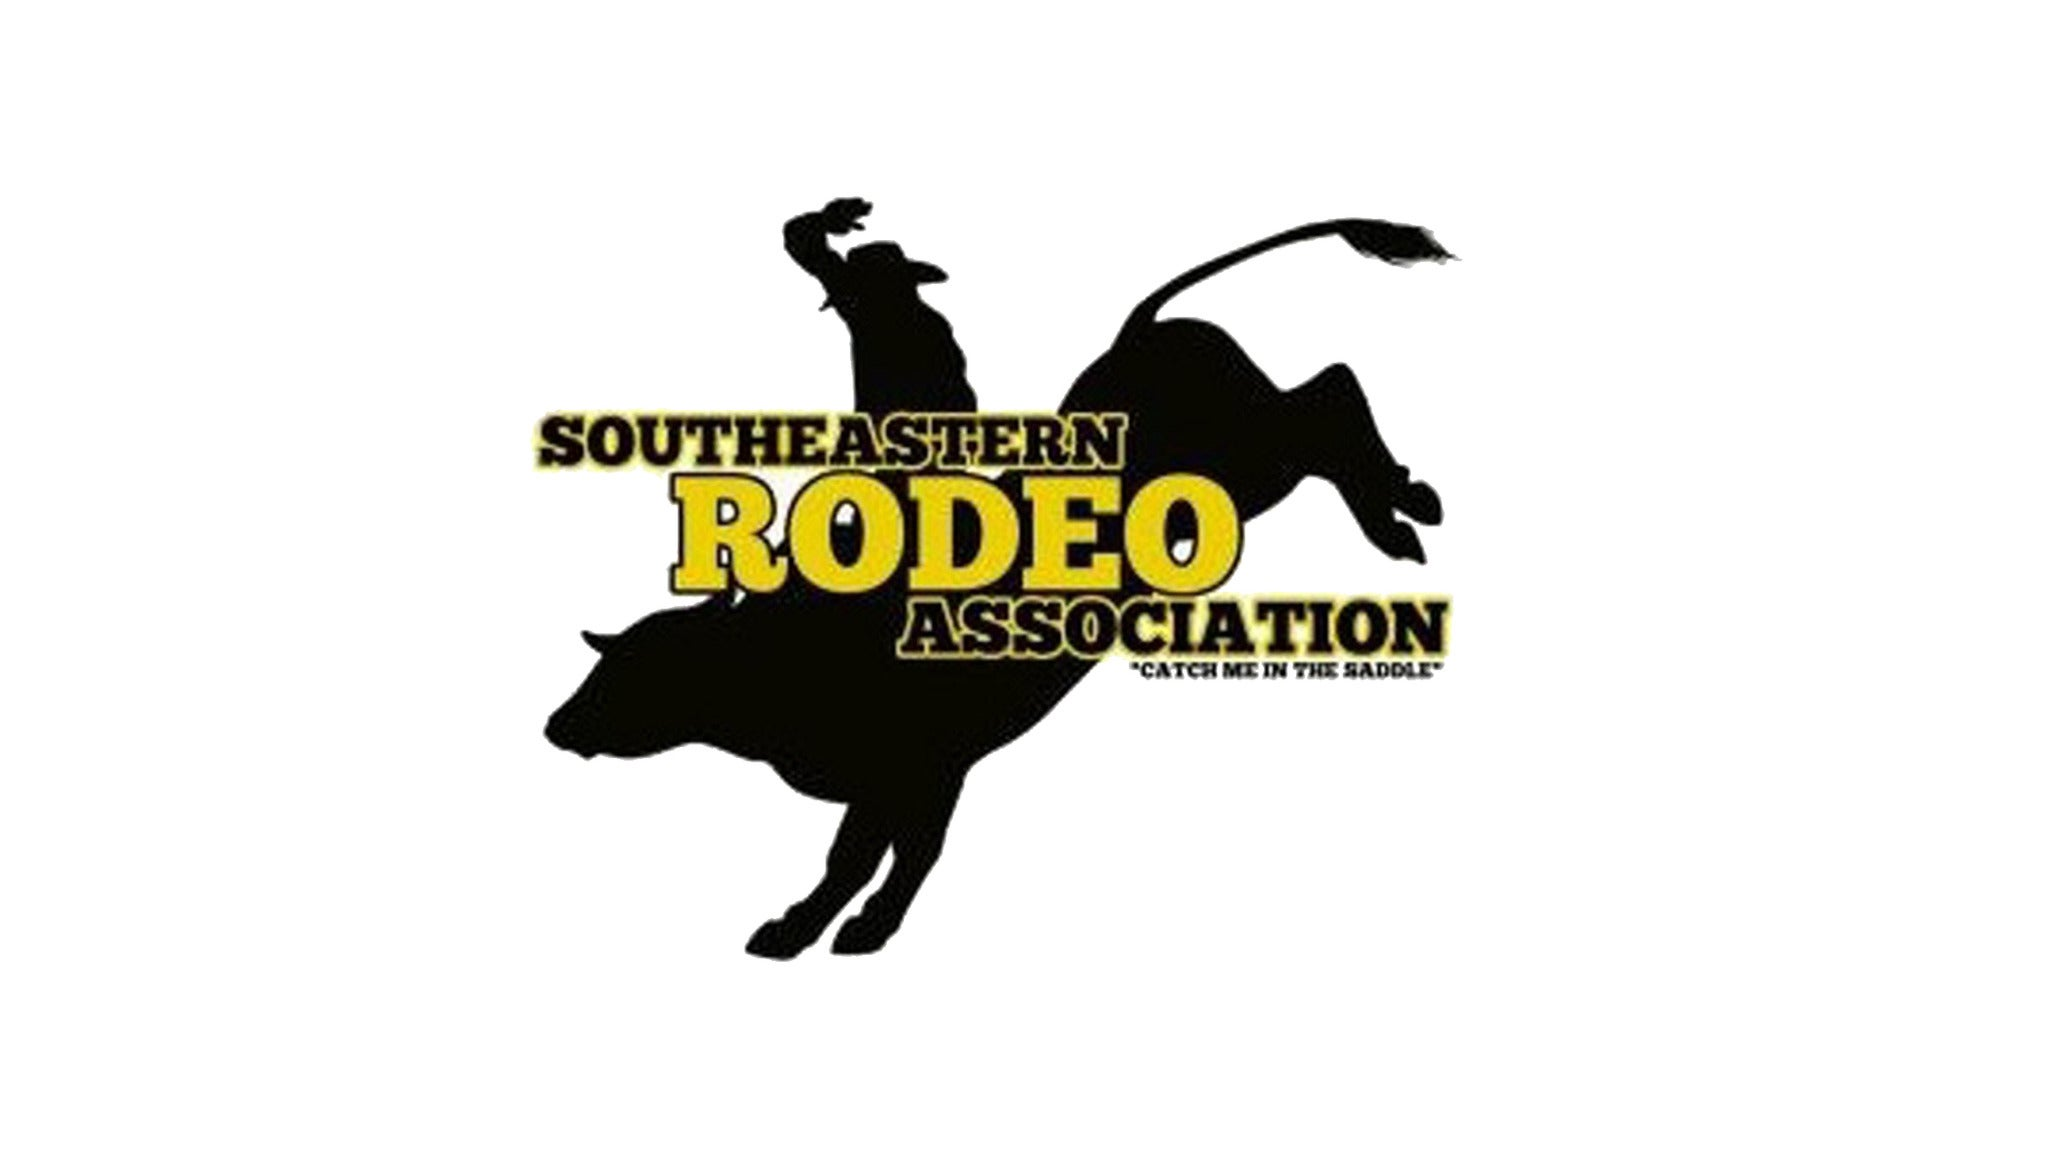 Southeastern Rodeo Assocation at Columbus Civic Center